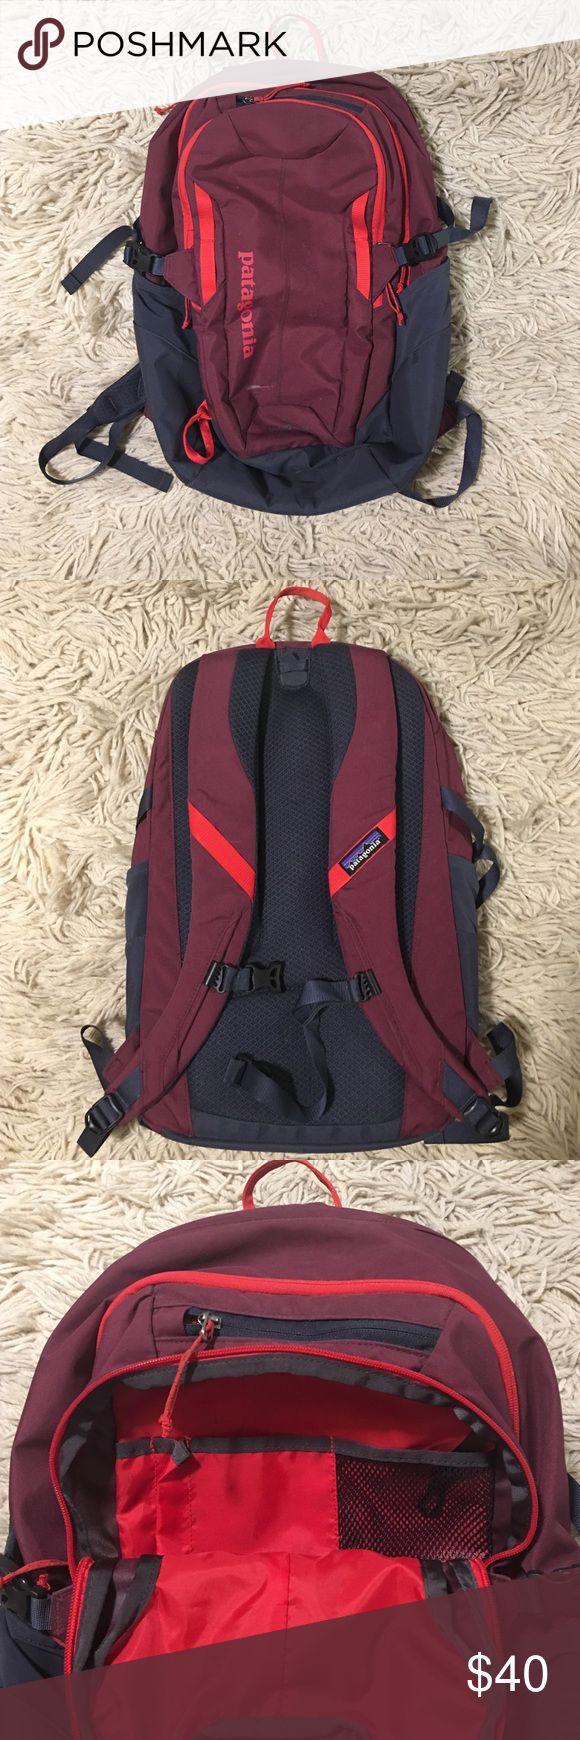 Patagonia Refugio 28L Backpack 28L - Plum, grey, with red/orange accents - barely used - Front, middle, and back pockets plus small pocket on top & one on each side - Perfect for hiking or other activities - not for trade Patagonia Bags Backpacks